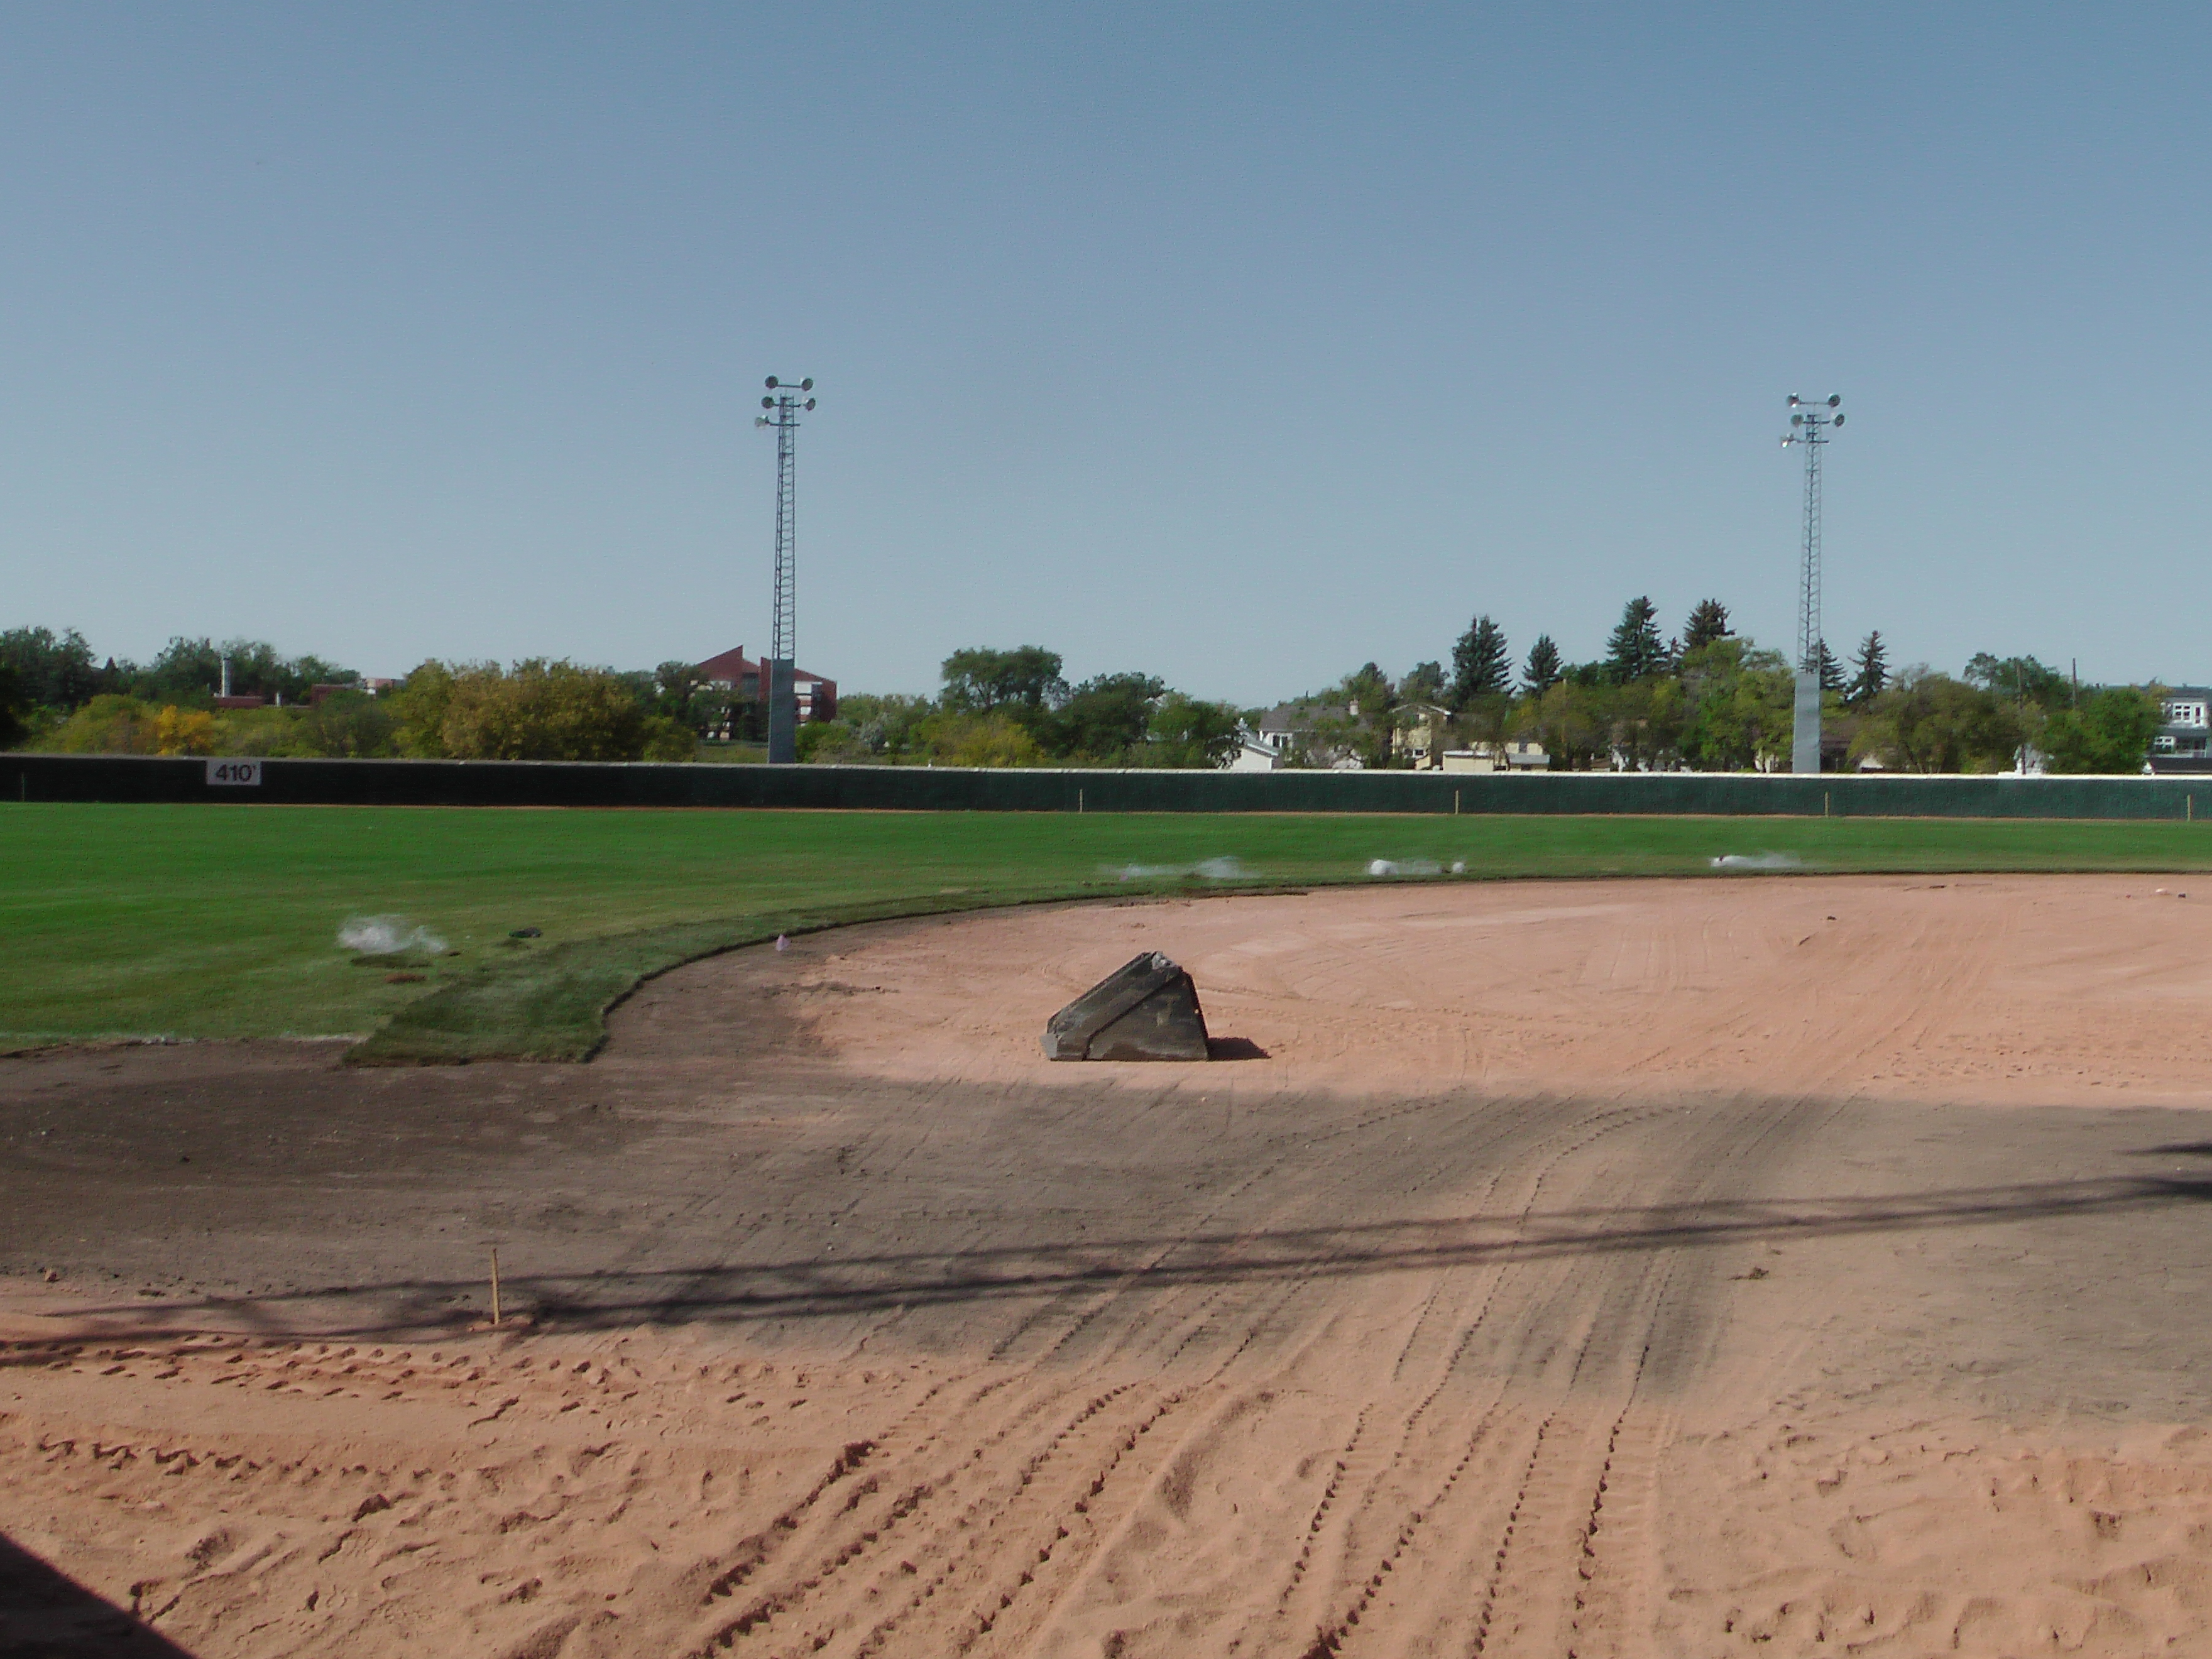 Sept 5 2018 Optimist Park Field Renovations, Placing New Sod/Leveling! - Image 3